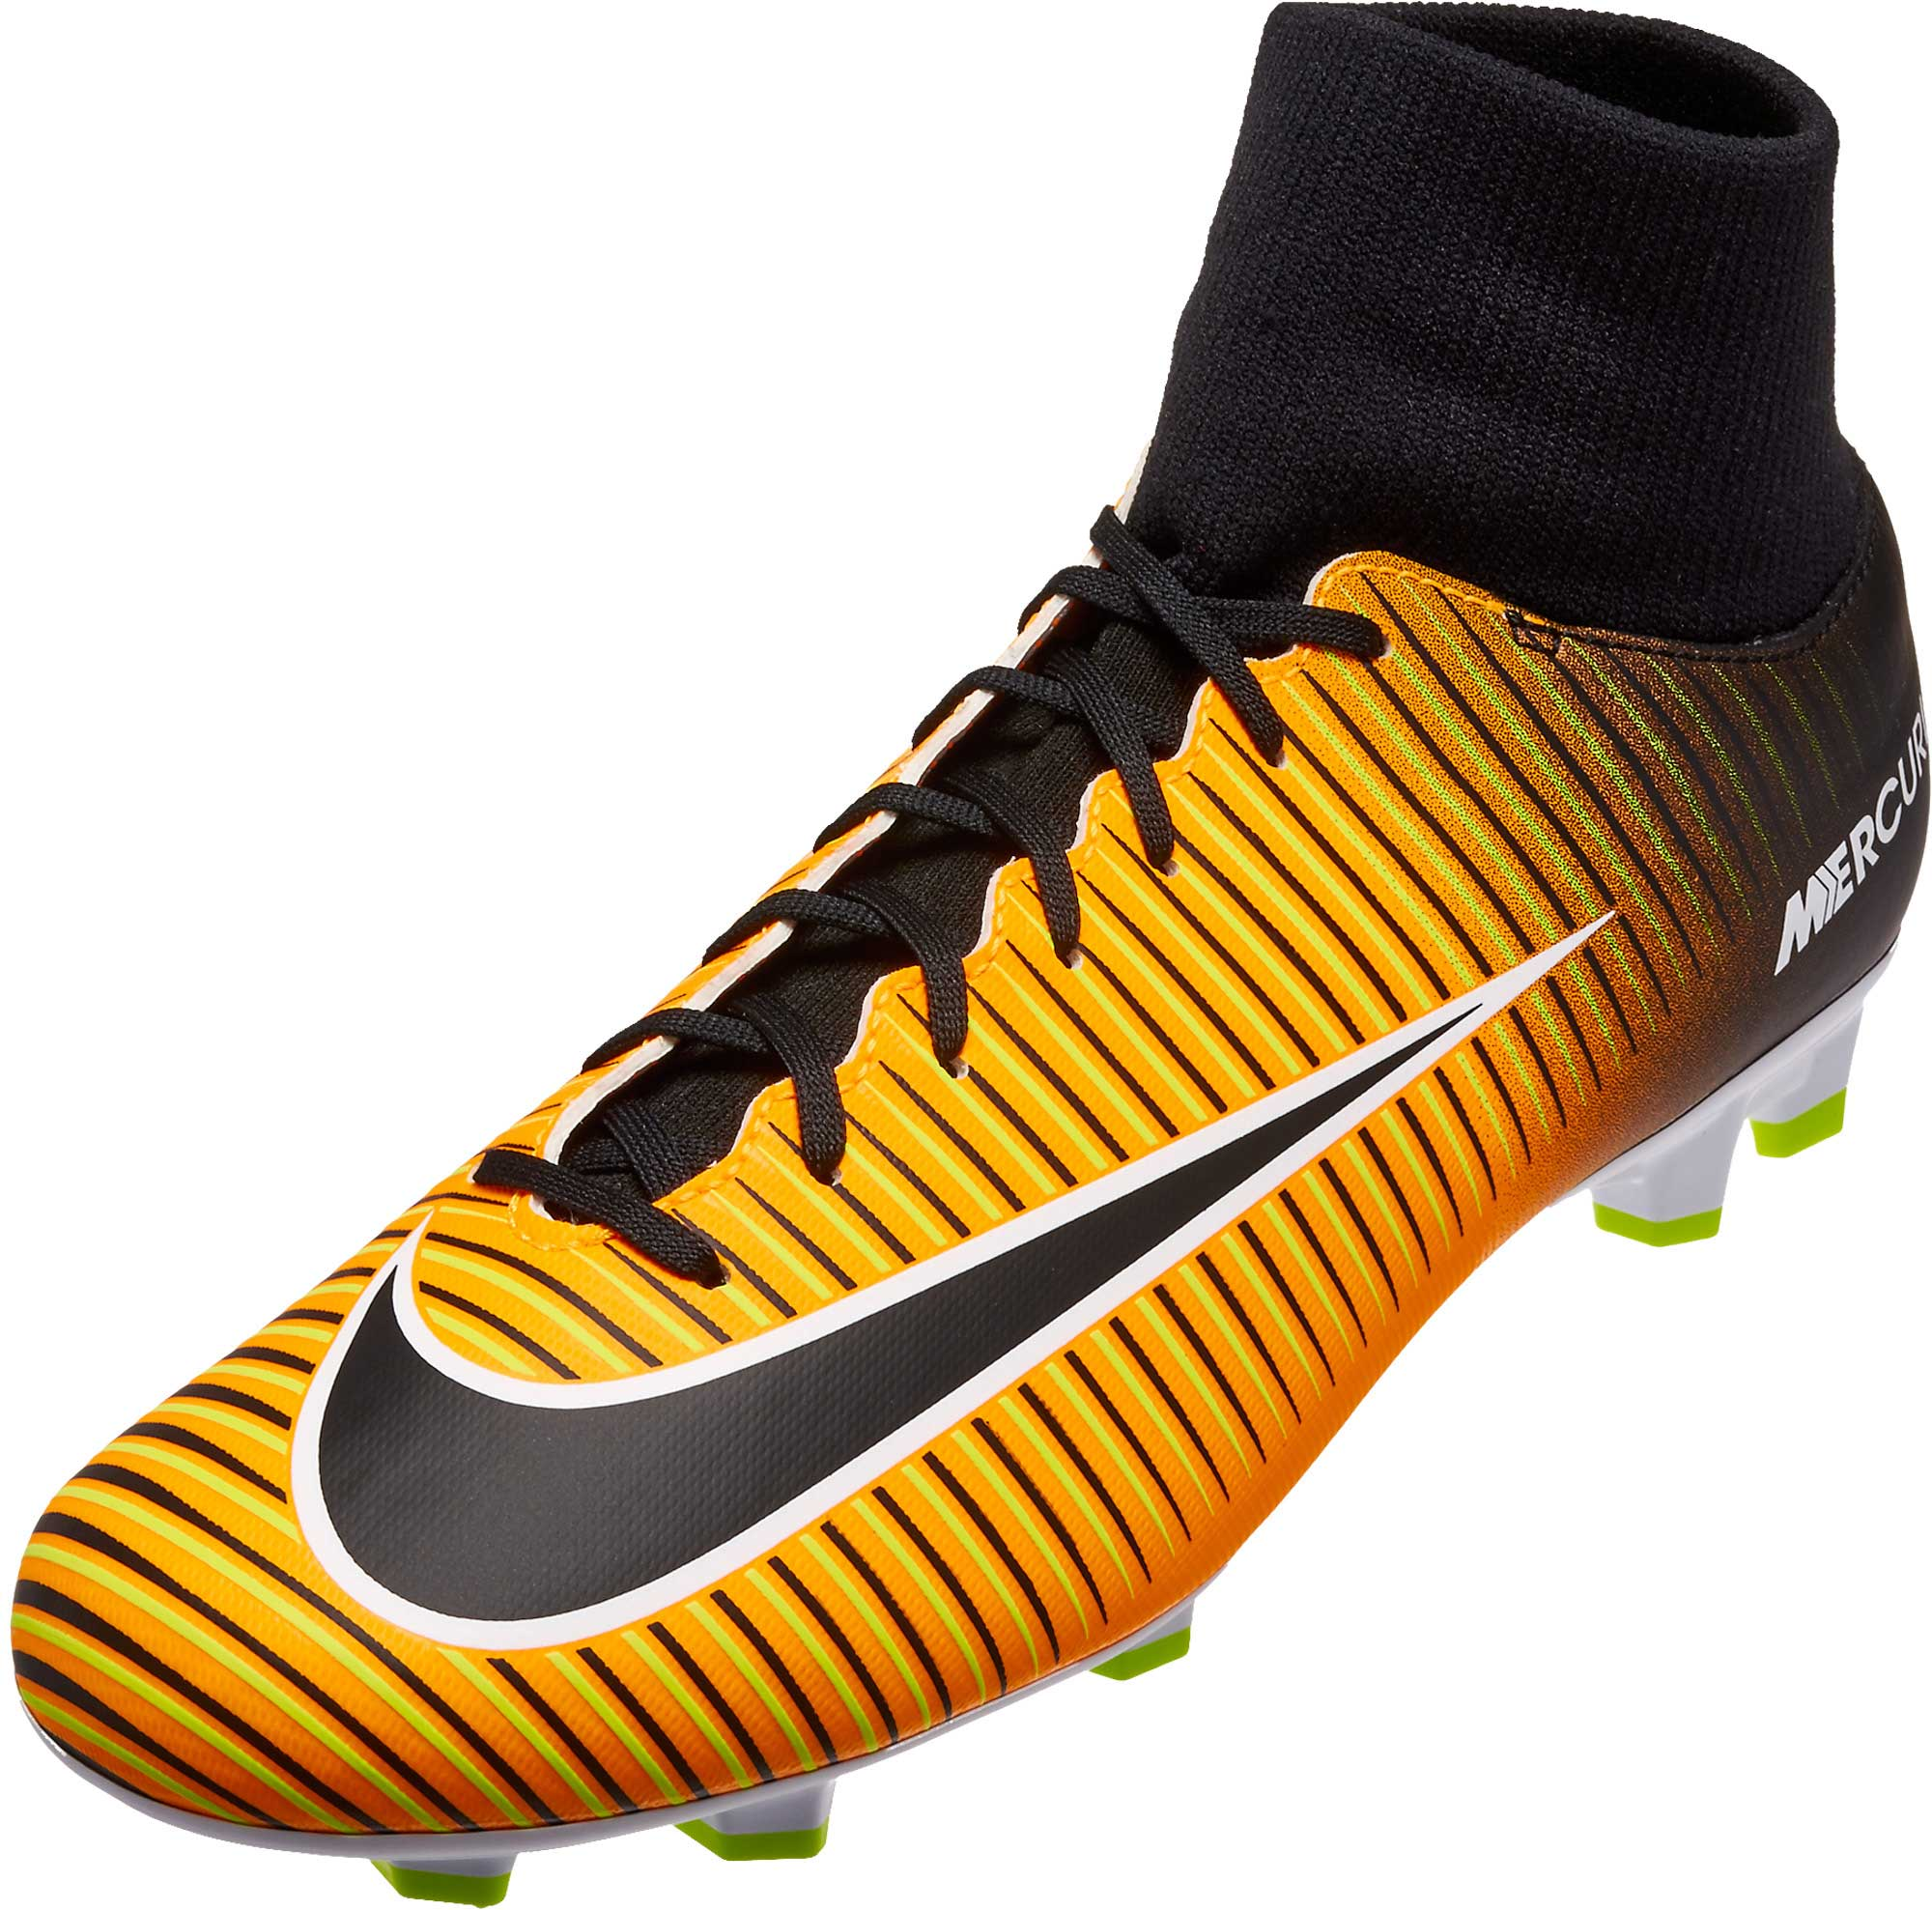 low priced f424a 7e5e4 Nike Mercurial Victory VI DF FG Soccer Cleats - Laser Orange ...